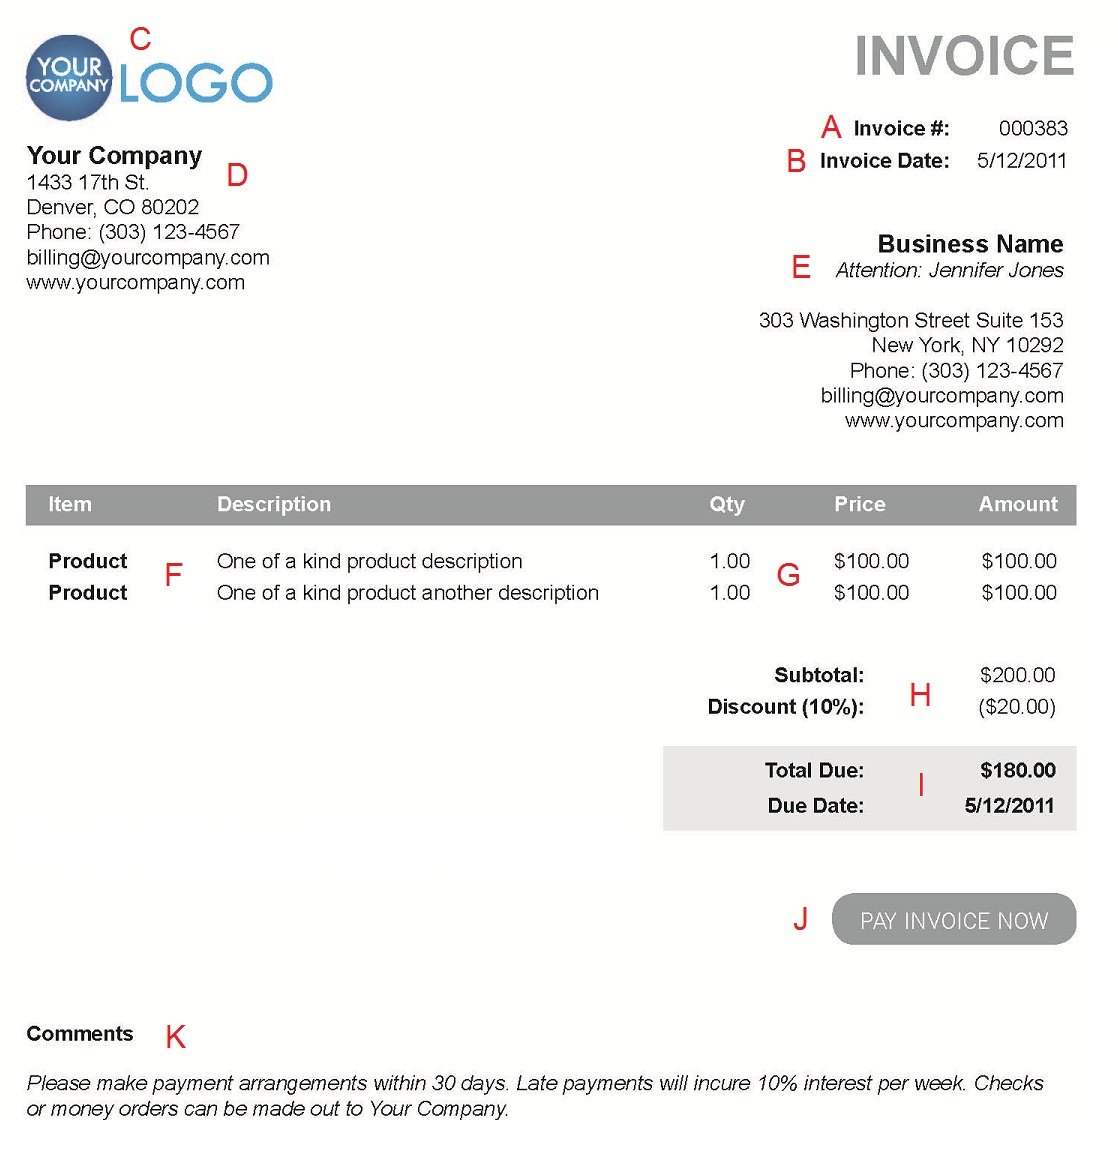 Ultrablogus  Splendid The  Different Sections Of An Electronic Payment Invoice With Interesting A  With Astounding Printable Blank Invoices Also Dummy Invoice Template In Addition Basware Invoice Processing And Free Invoice Generator Download As Well As What Is The Meaning Of Invoice Additionally Detailed Invoice Template From Paysimplecom With Ultrablogus  Interesting The  Different Sections Of An Electronic Payment Invoice With Astounding A  And Splendid Printable Blank Invoices Also Dummy Invoice Template In Addition Basware Invoice Processing From Paysimplecom